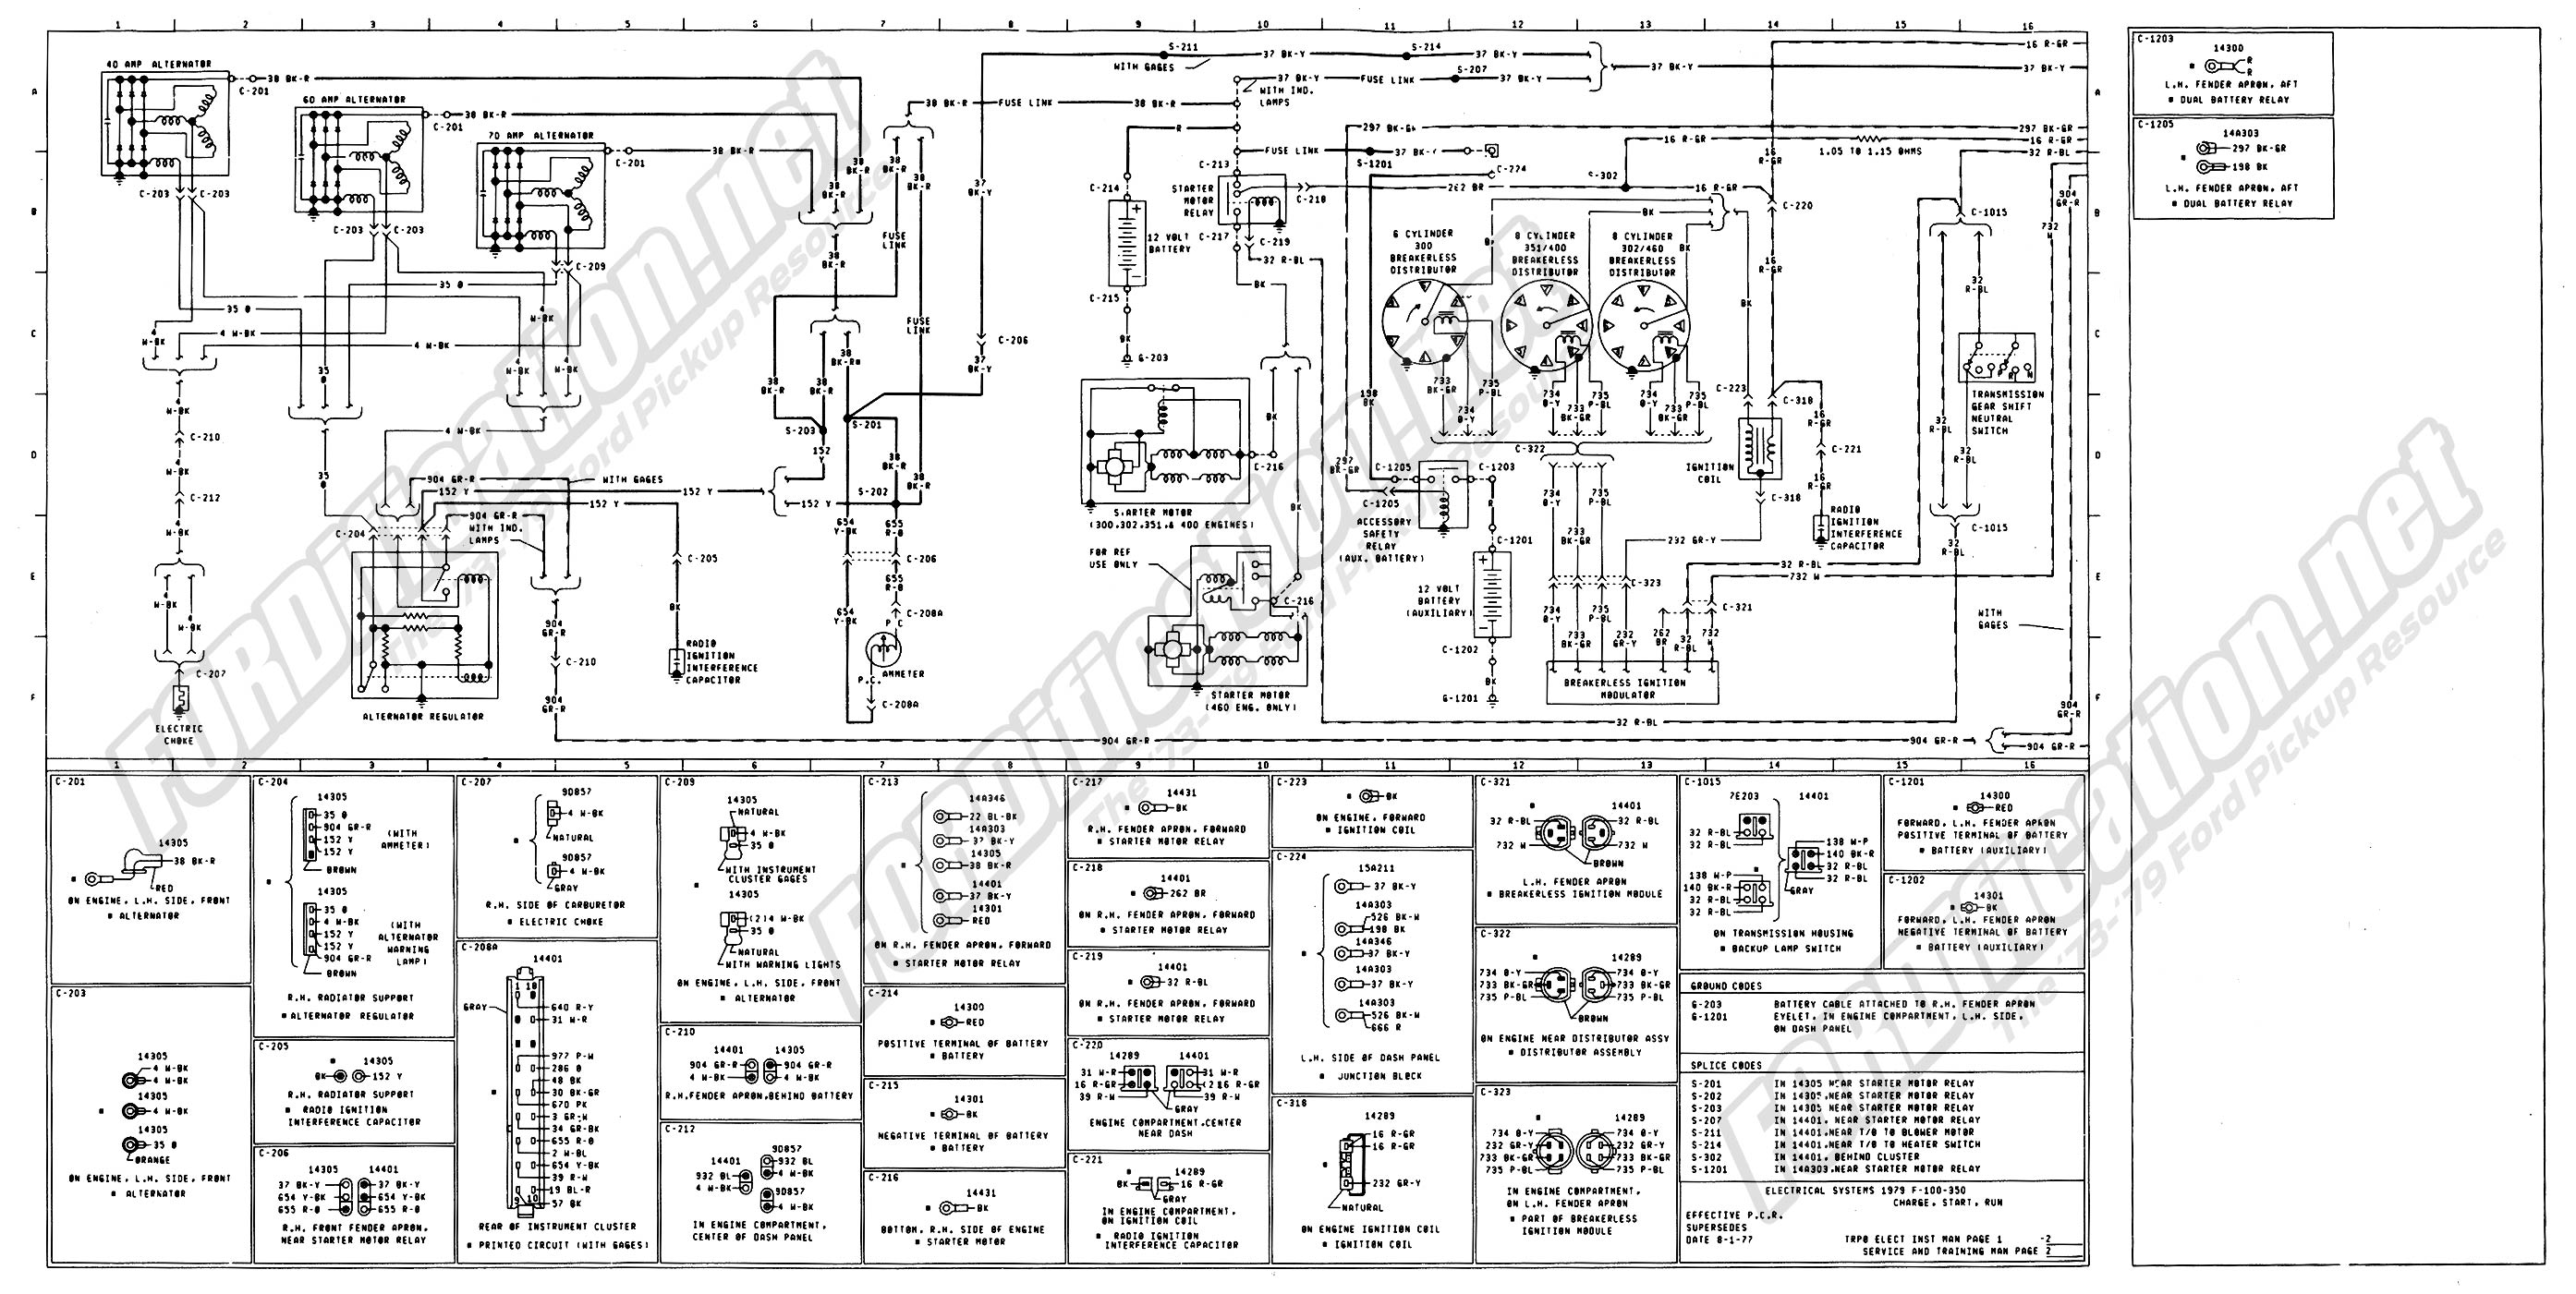 wiring_79master_2of9 1973 1979 ford truck wiring diagrams & schematics fordification net 1998 ford f150 radio wiring diagram at bayanpartner.co